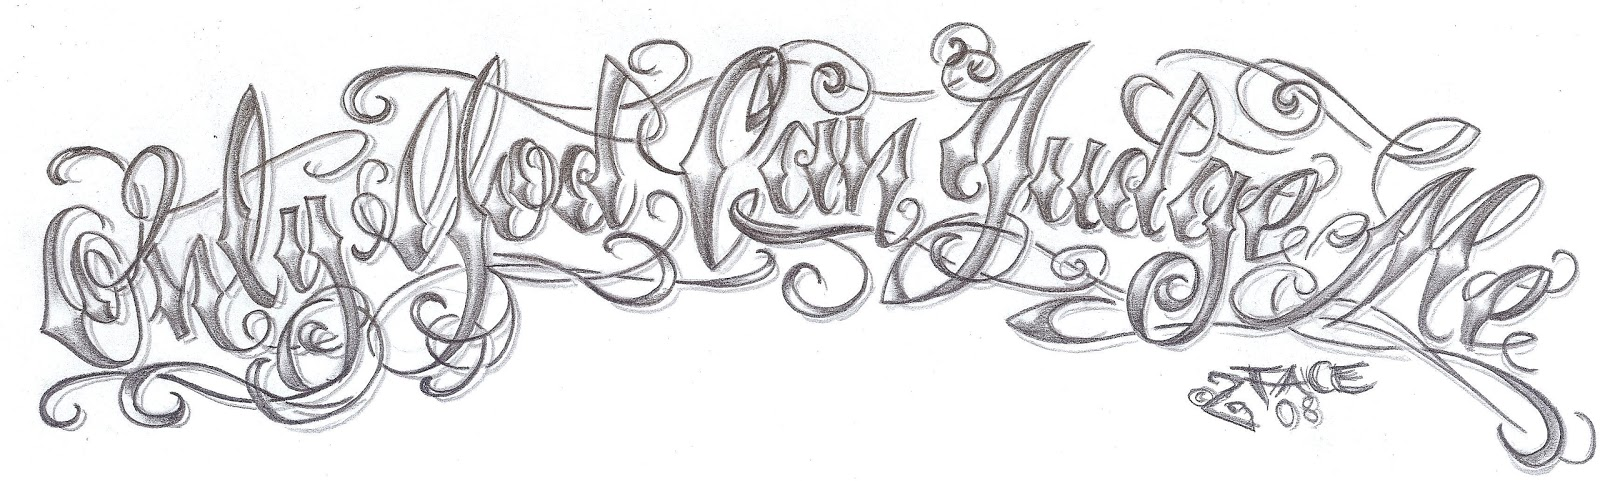 tattoo lettering design1